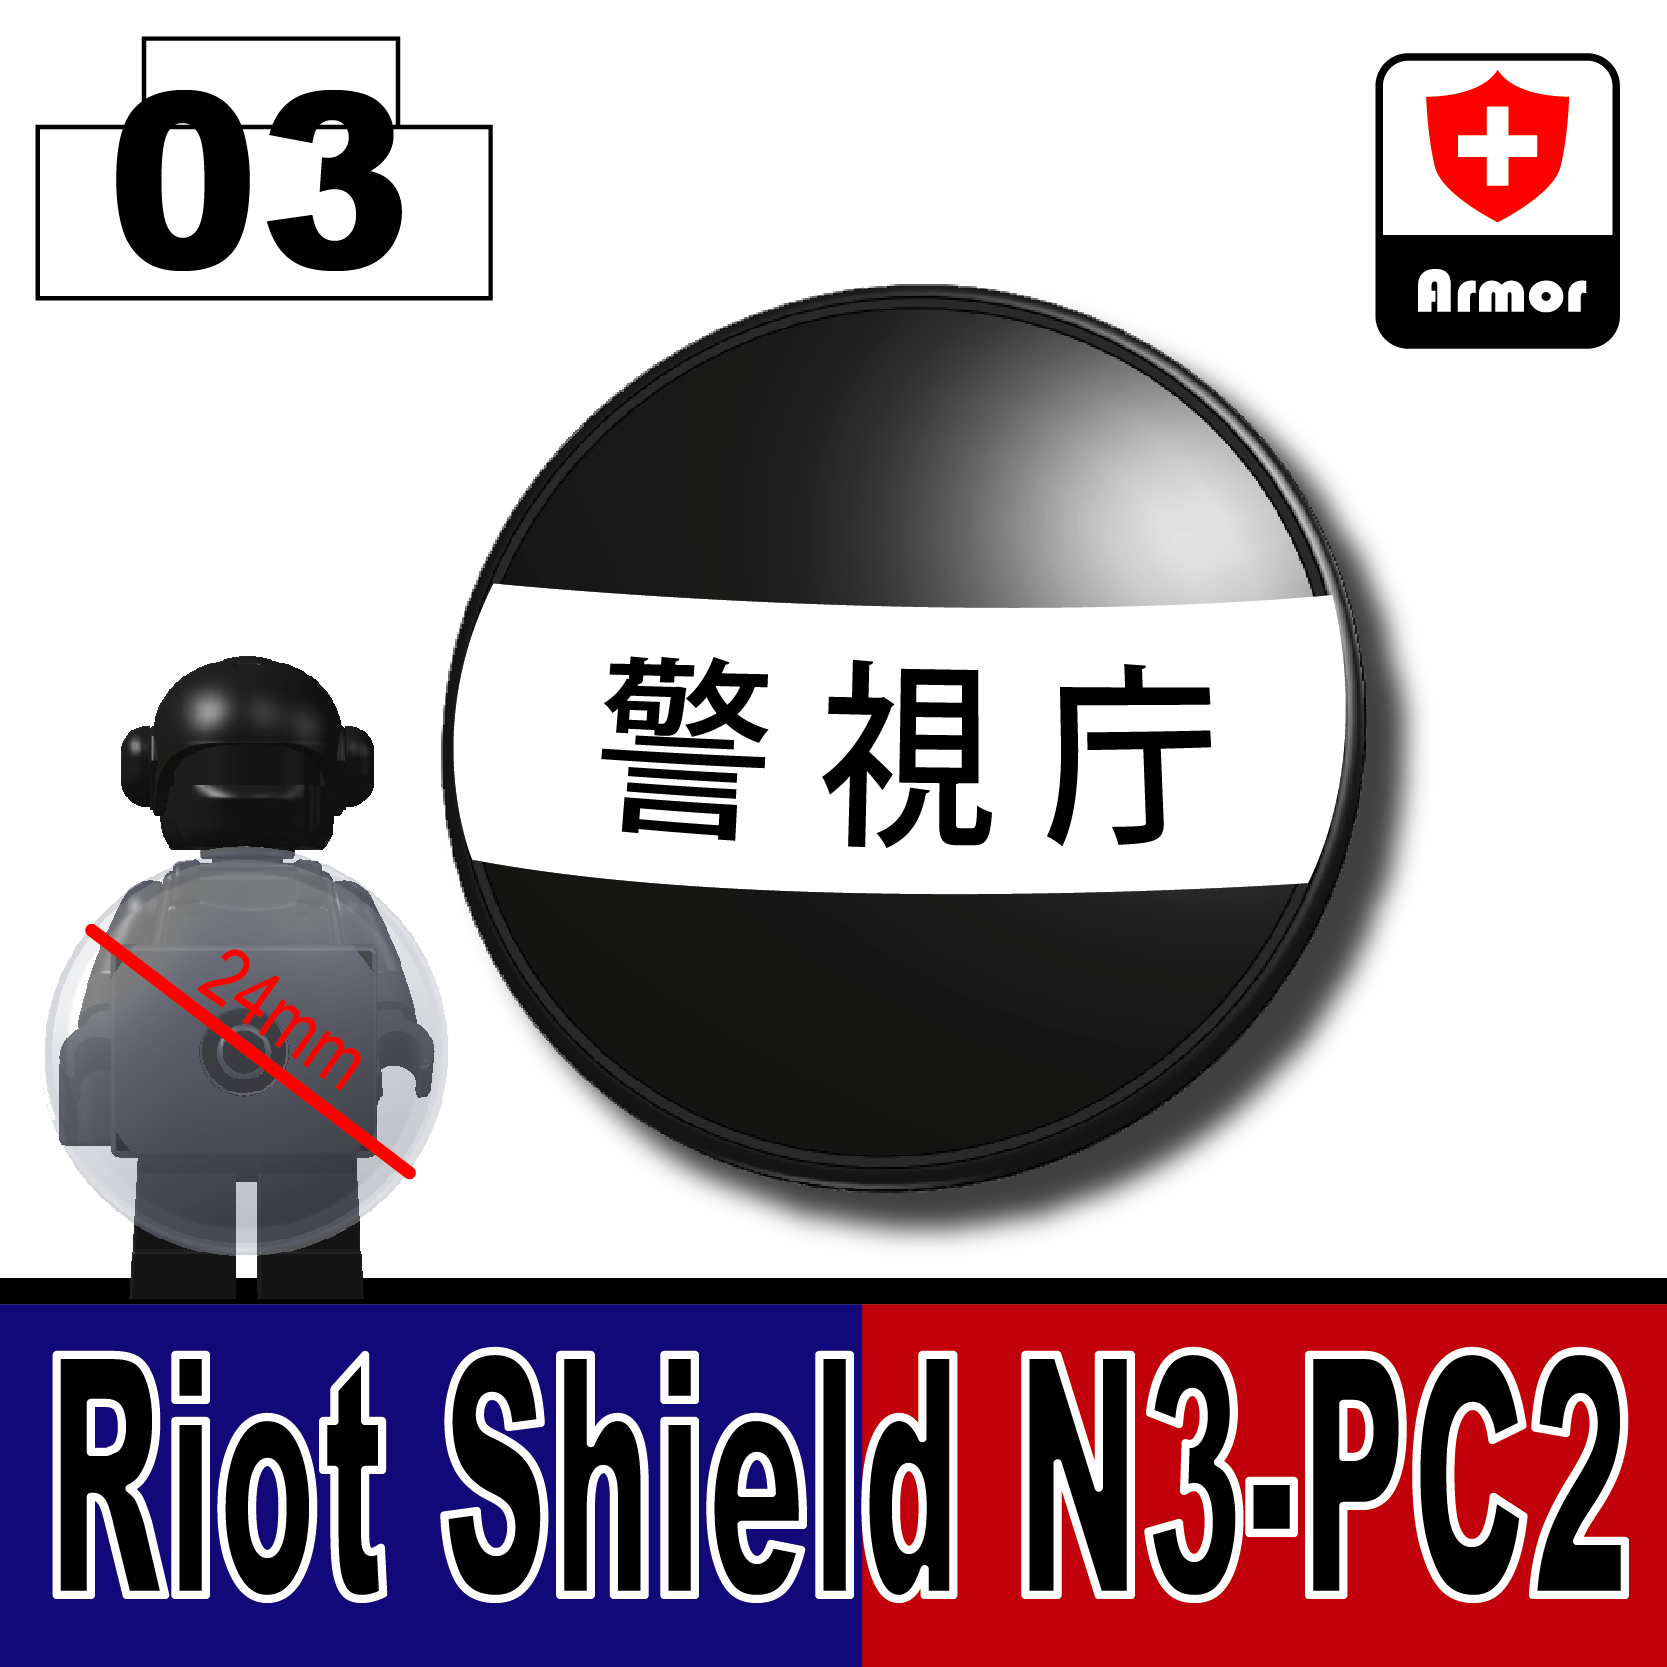 Riot Shield N3-PC2